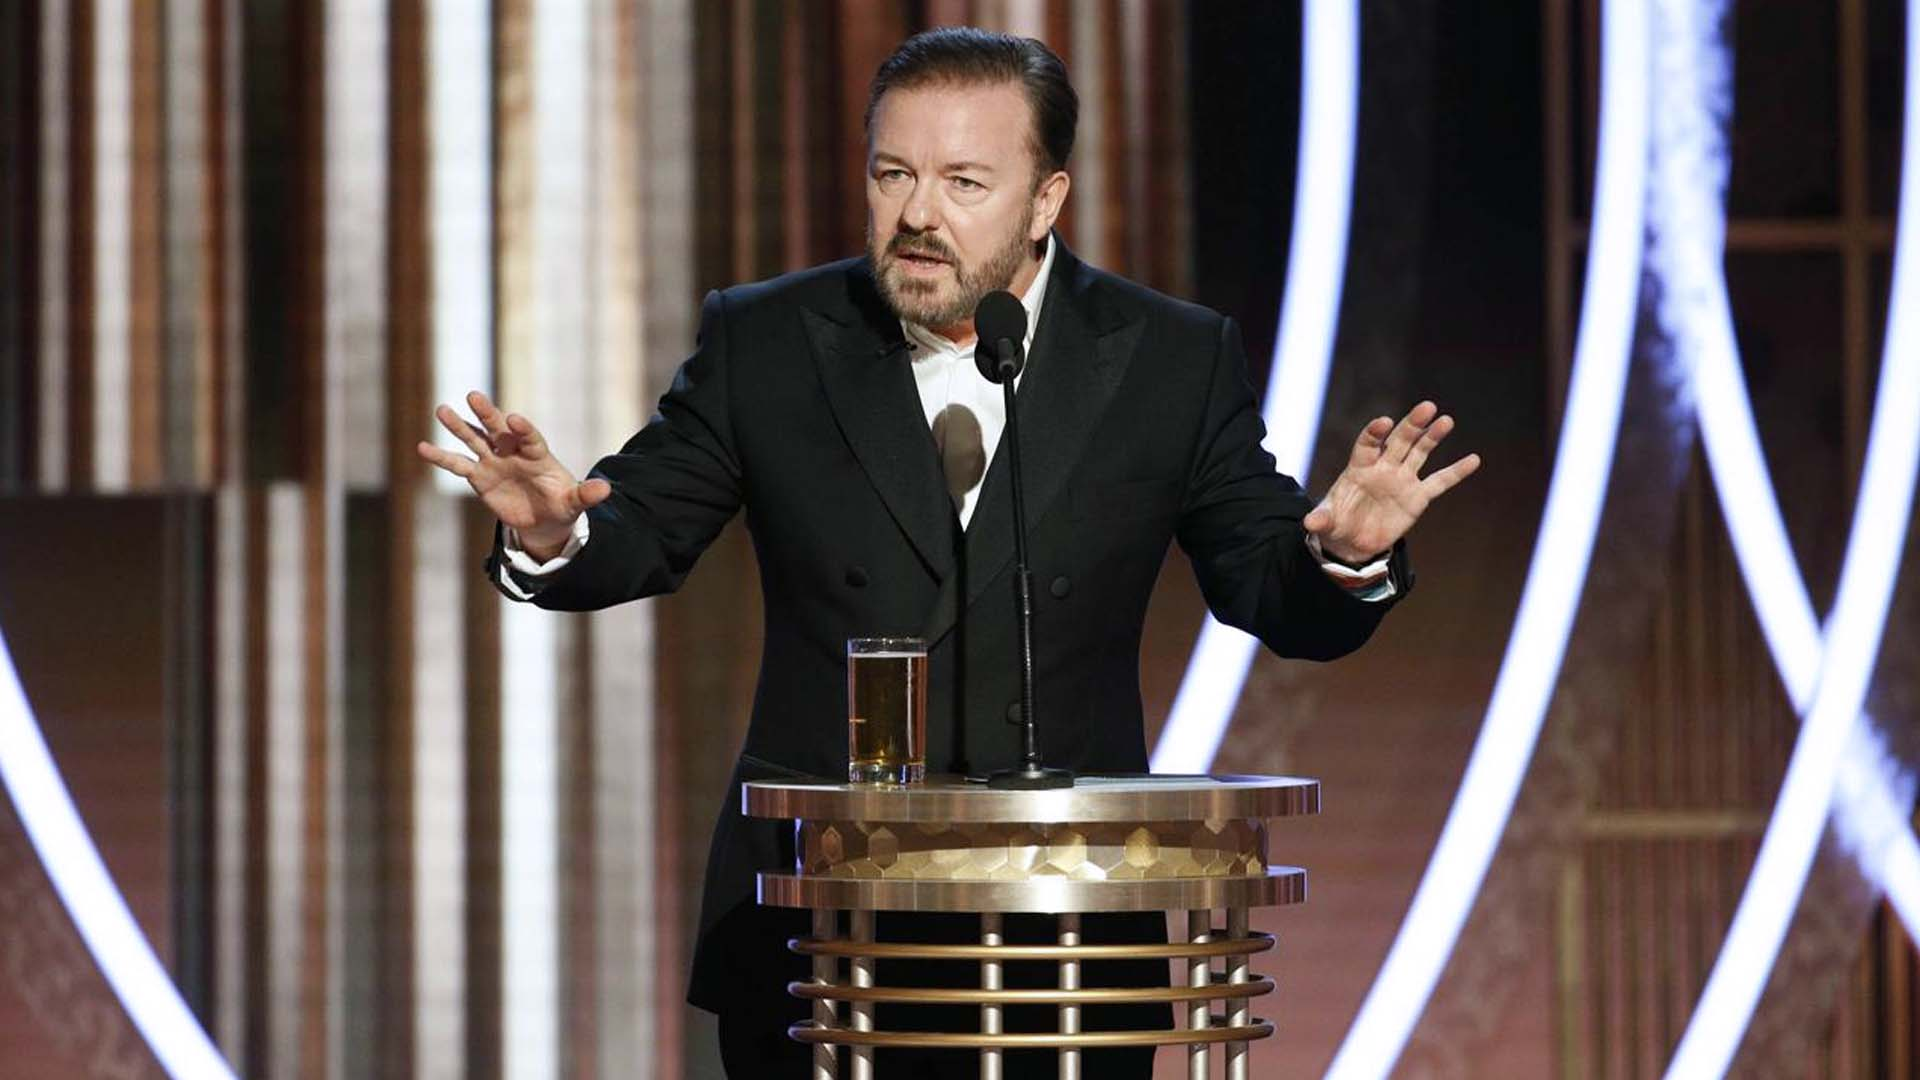 Ricky Gervais non ha distrutto Hollywood, ha solo fatto stand-up comedy